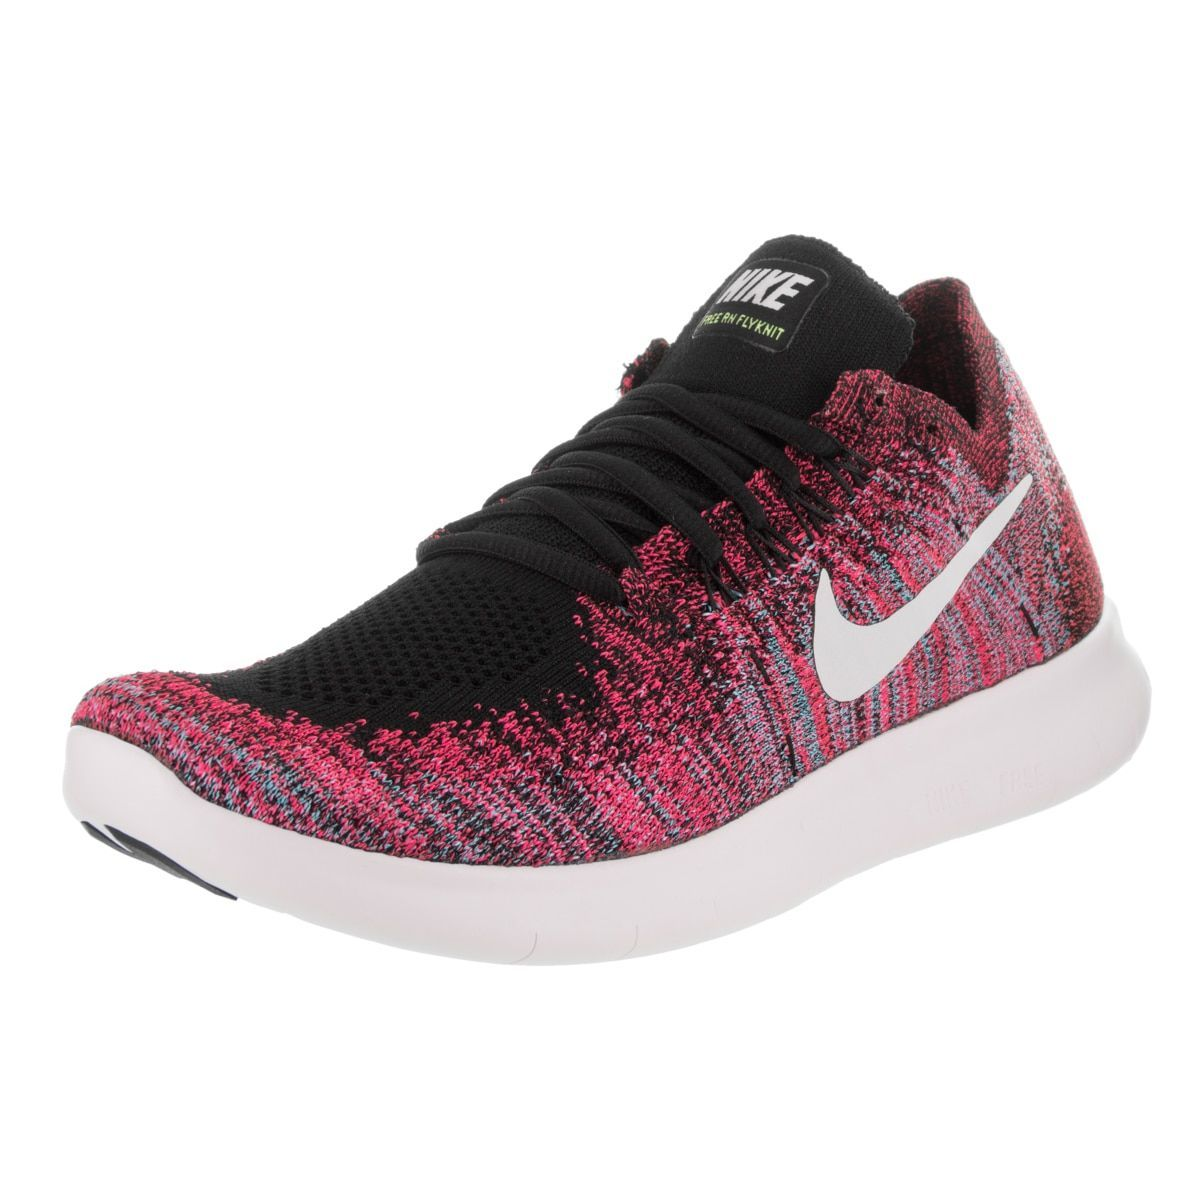 Overstock Com Online Shopping Bedding Furniture Electronics Jewelry Clothing More Pink Running Shoes Nike Women Womens Running Shoes